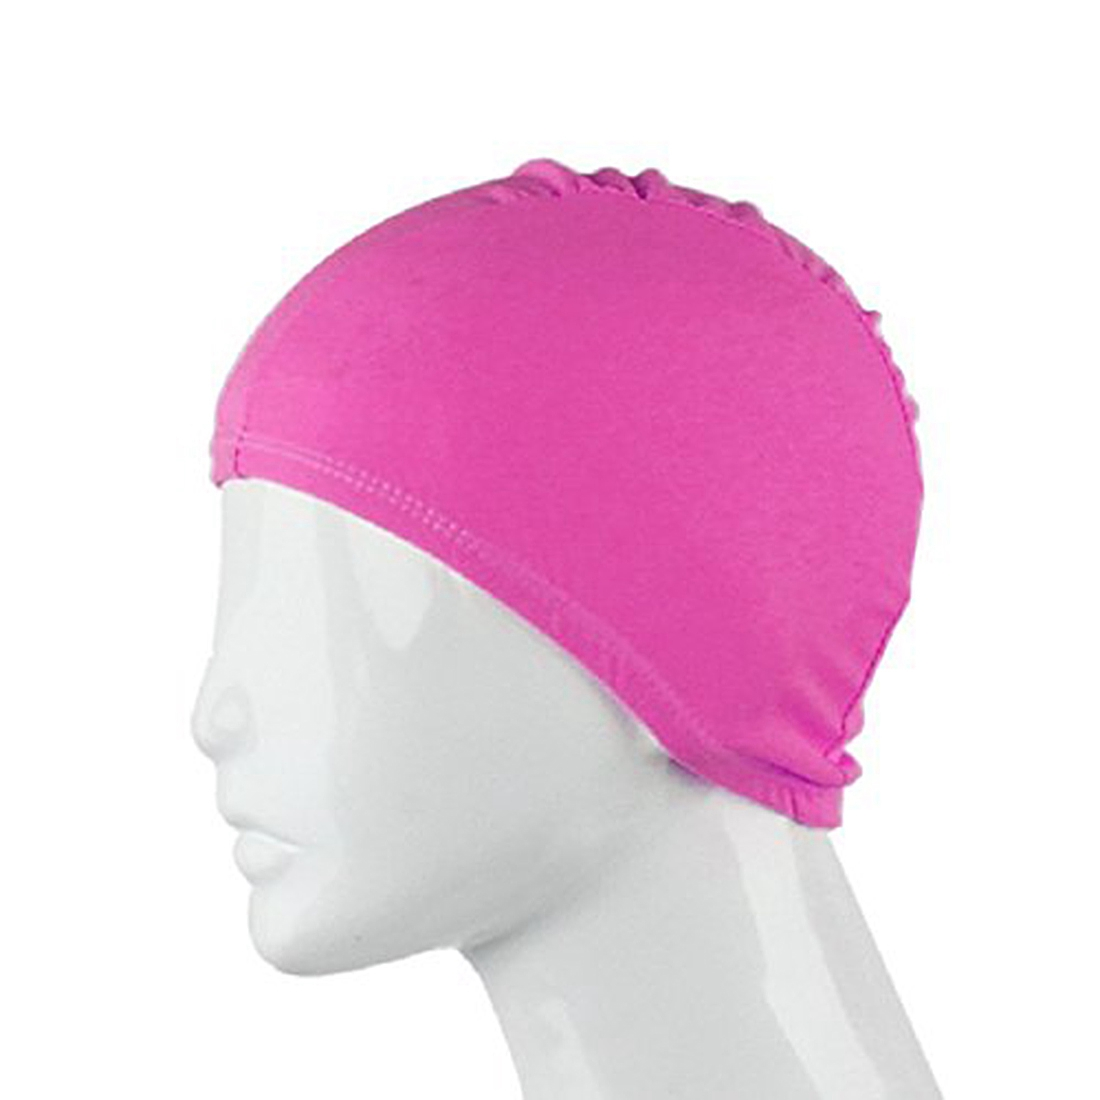 Adult Swimming Hats Unisex Outdoor Sports Stretch Cap Yellow Rose Red Islamabad